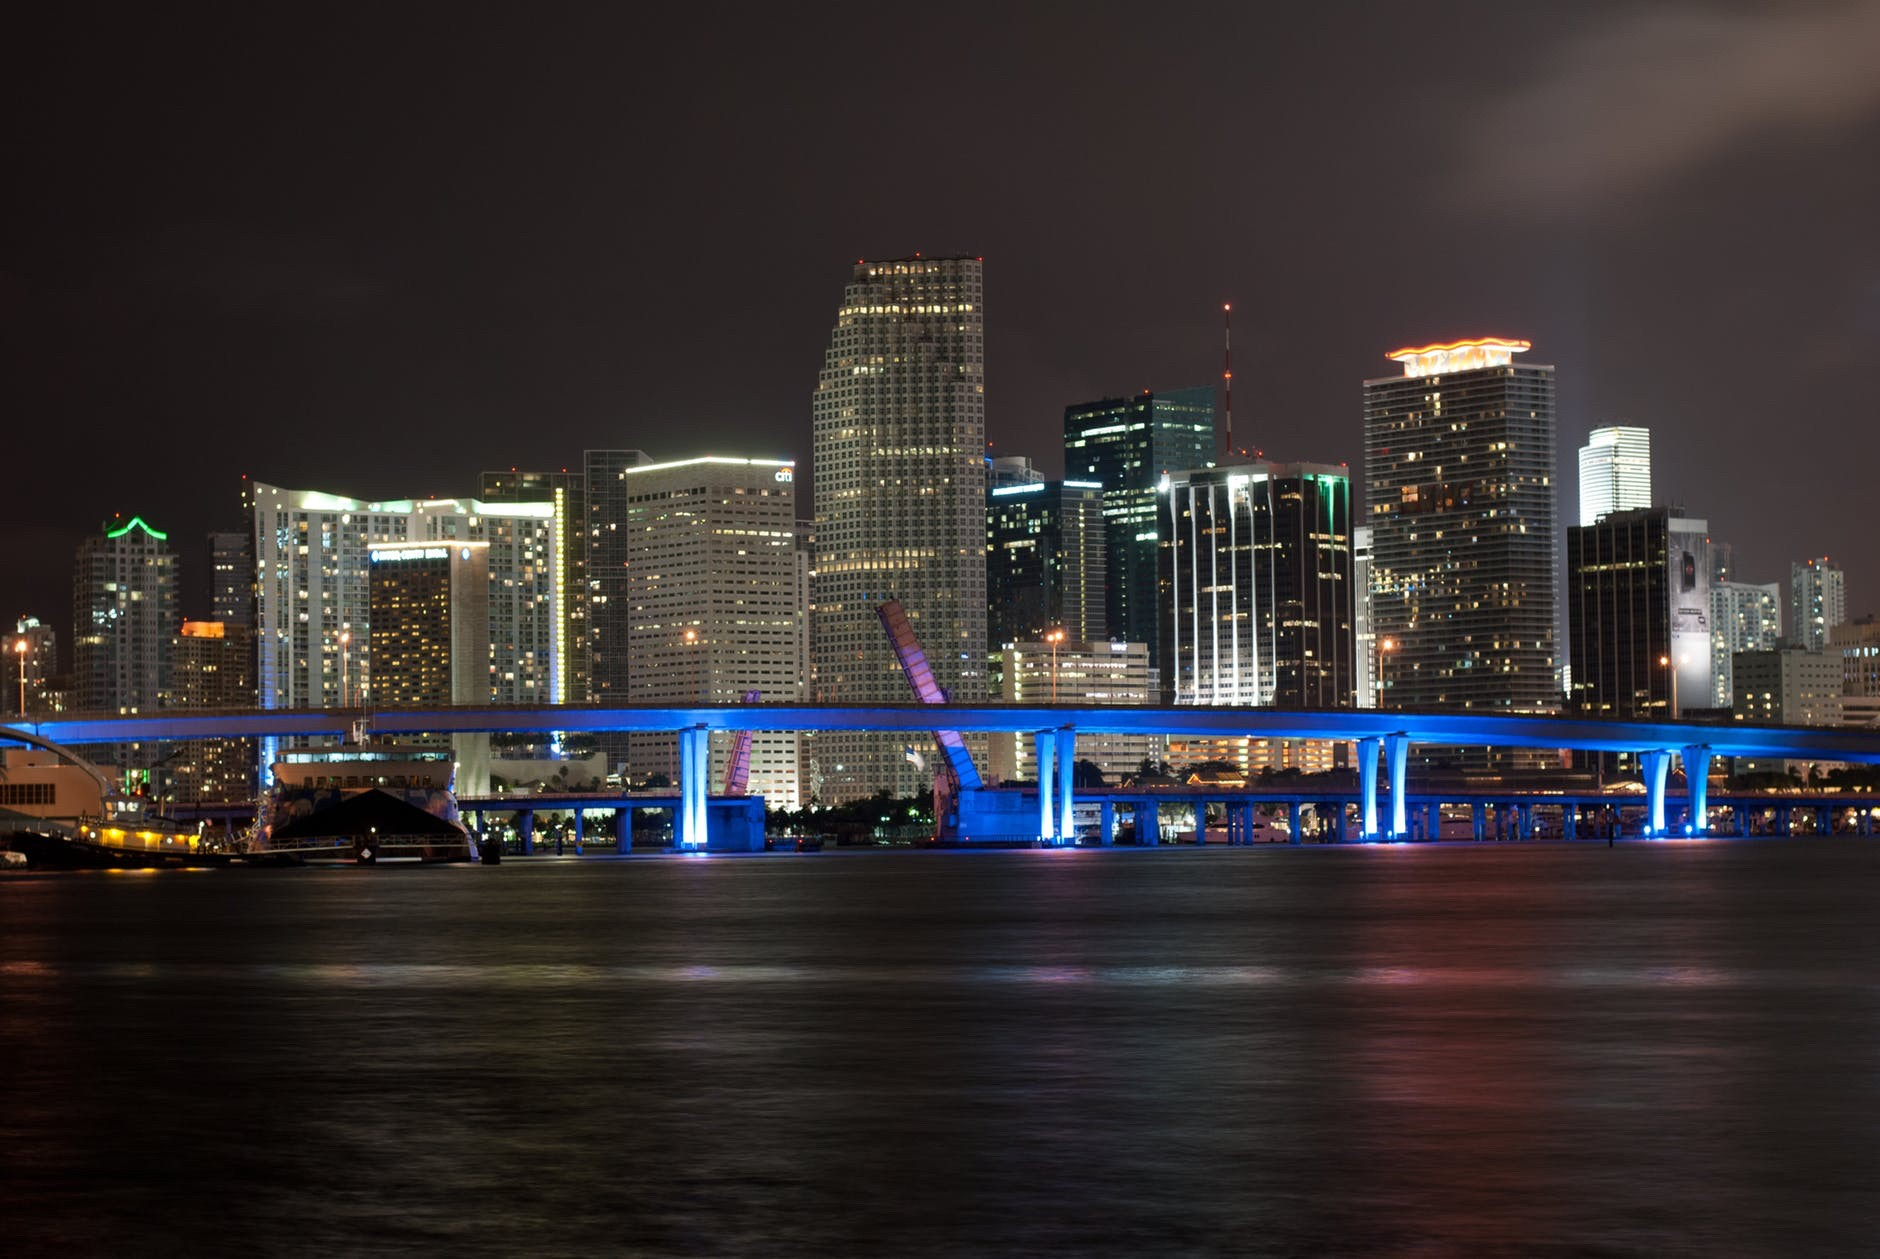 Flight Deal Round Trip From New York Area to Miami Area #newyork #miami #1week